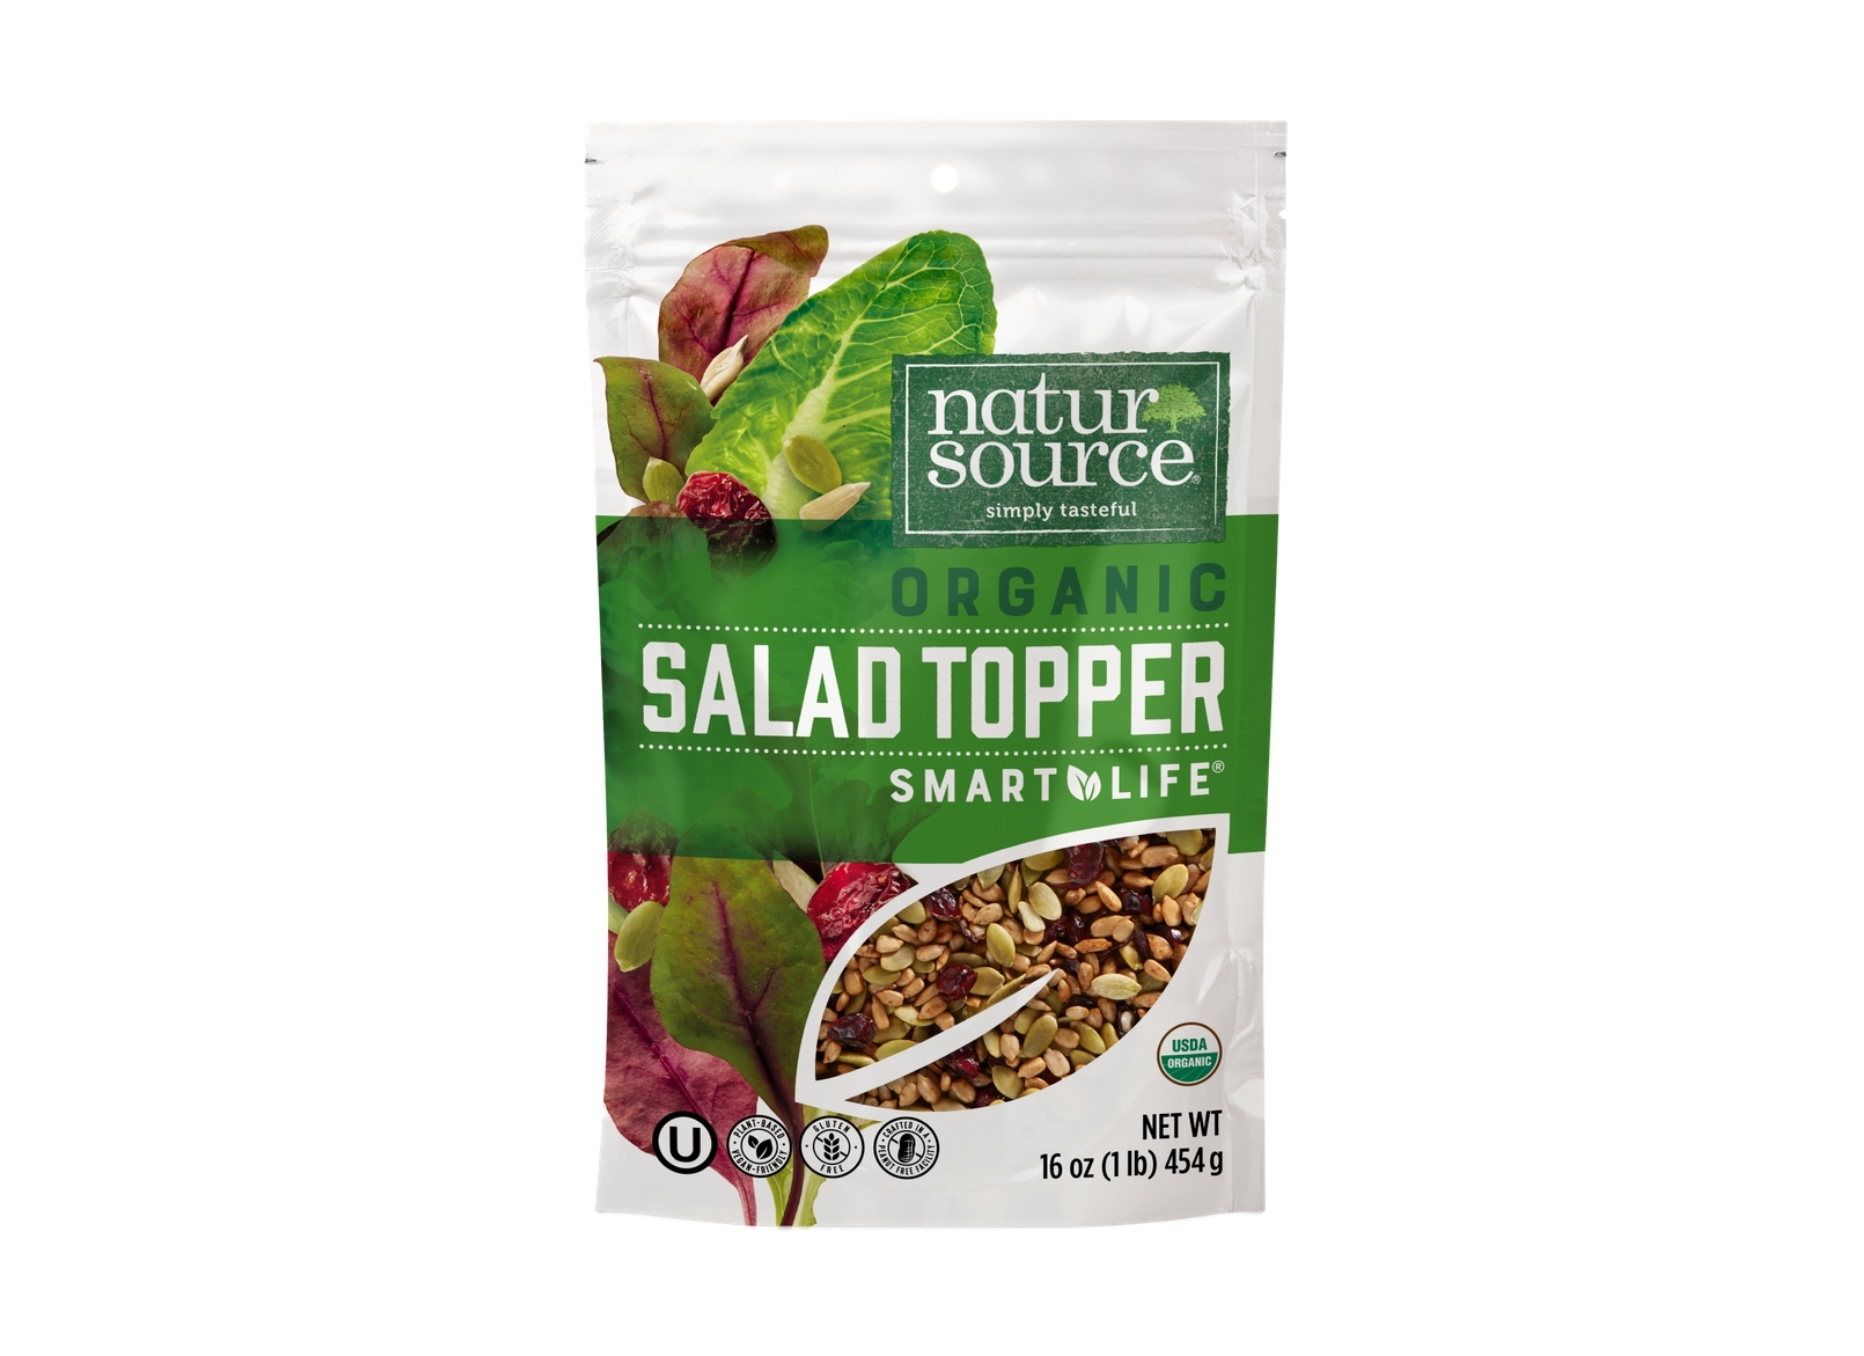 NaturSource salad toppers